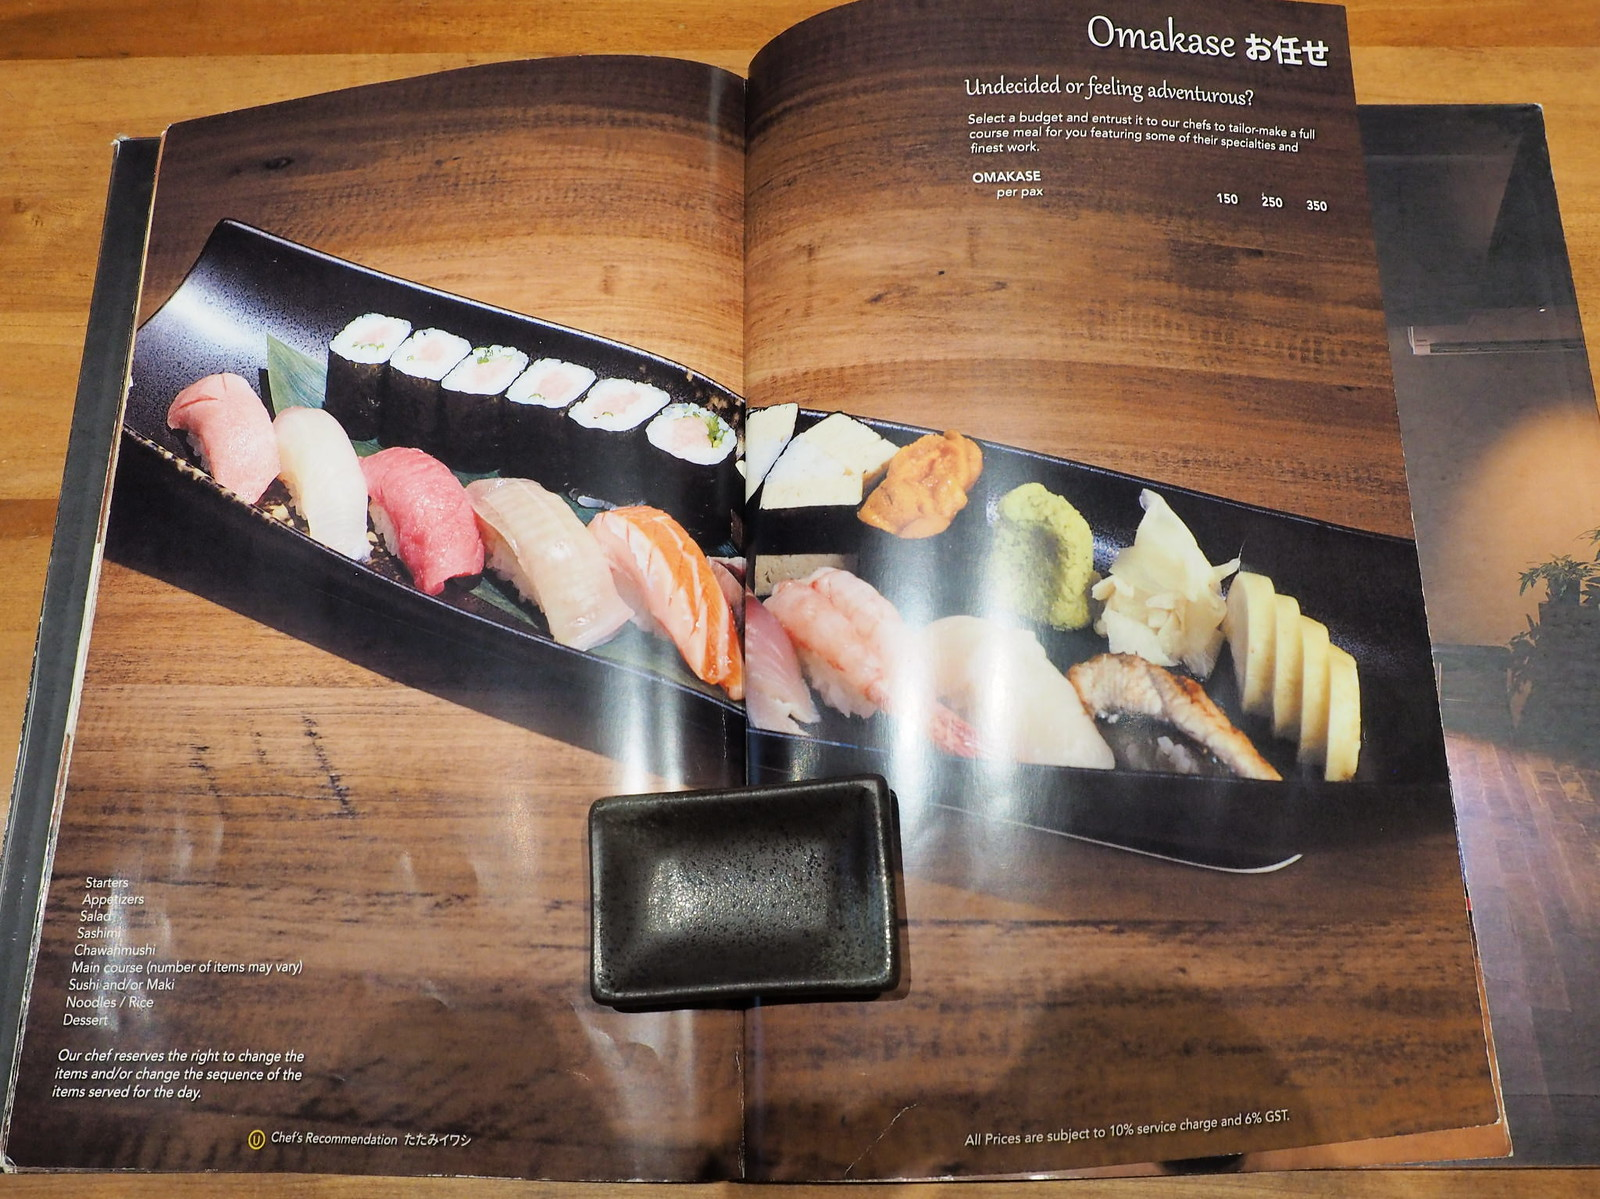 Omakase menu of Uroko Japanese Cuisine